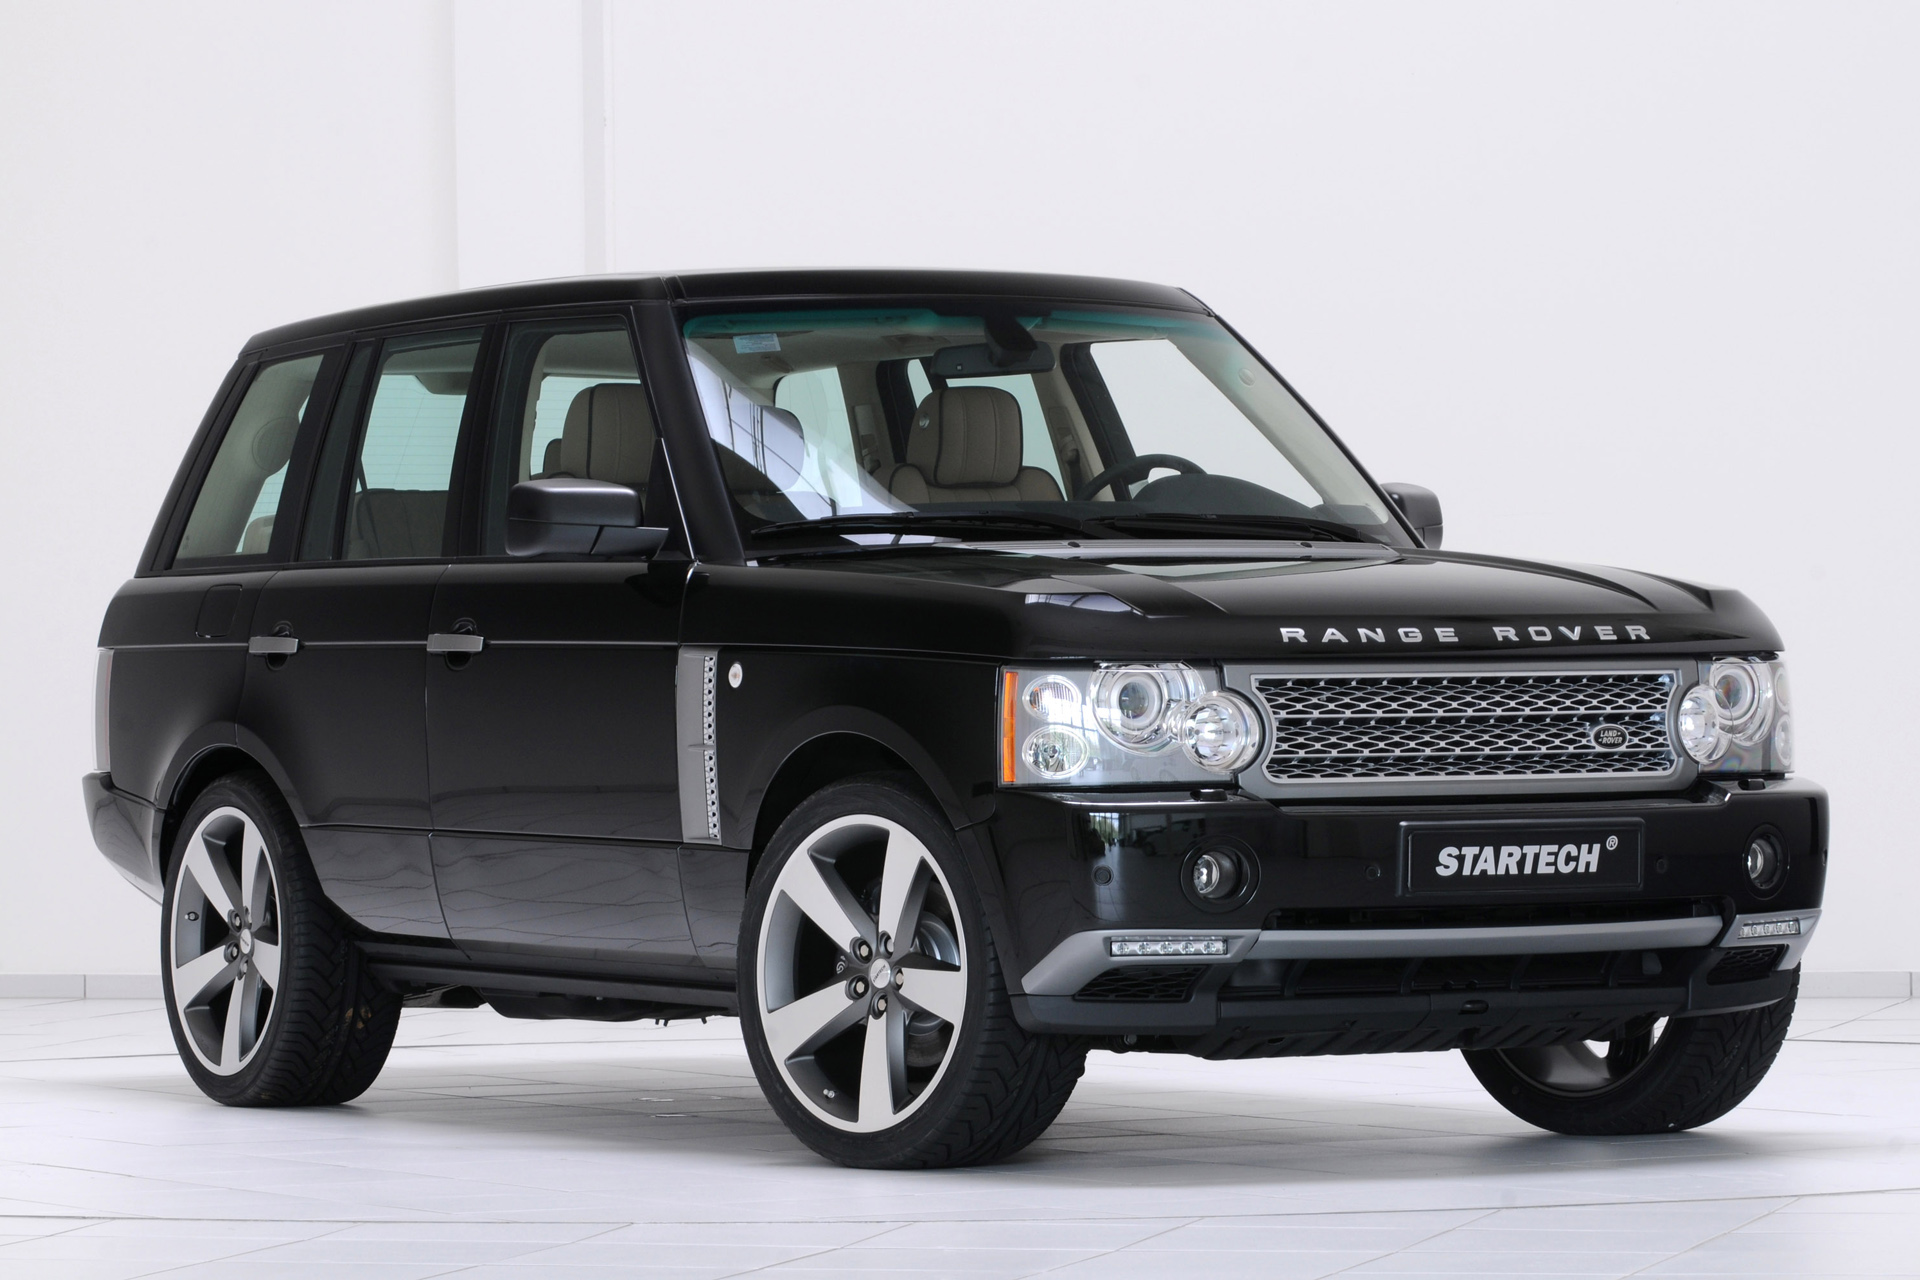 Startech Range Rover photo 68187